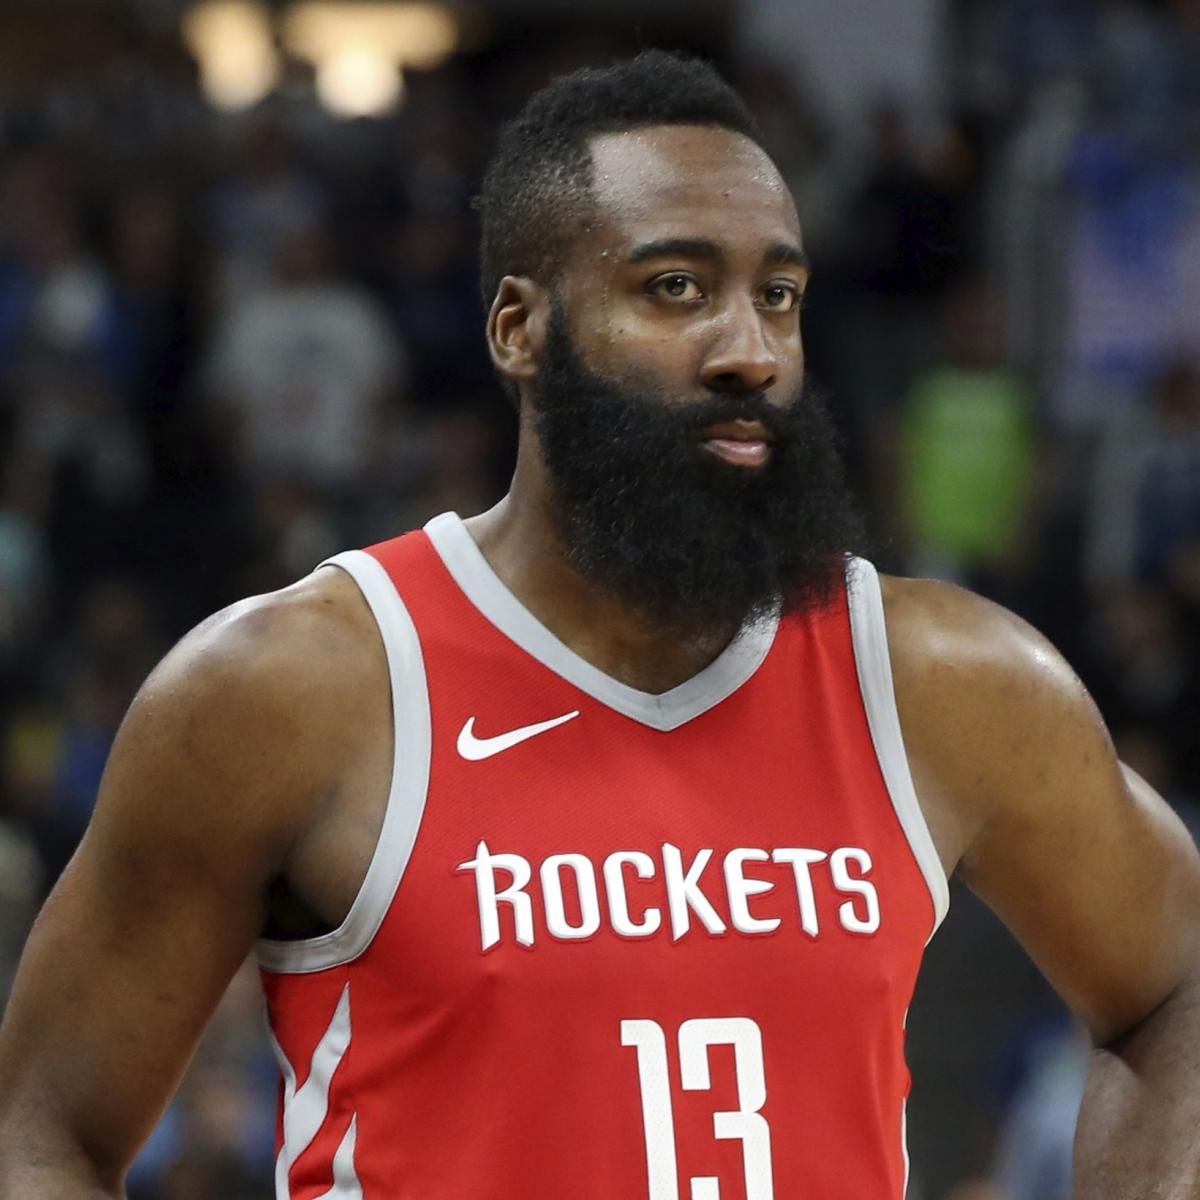 James Harden Injury Report: James Harden Accused Of Throwing Phone Of Woman Recording